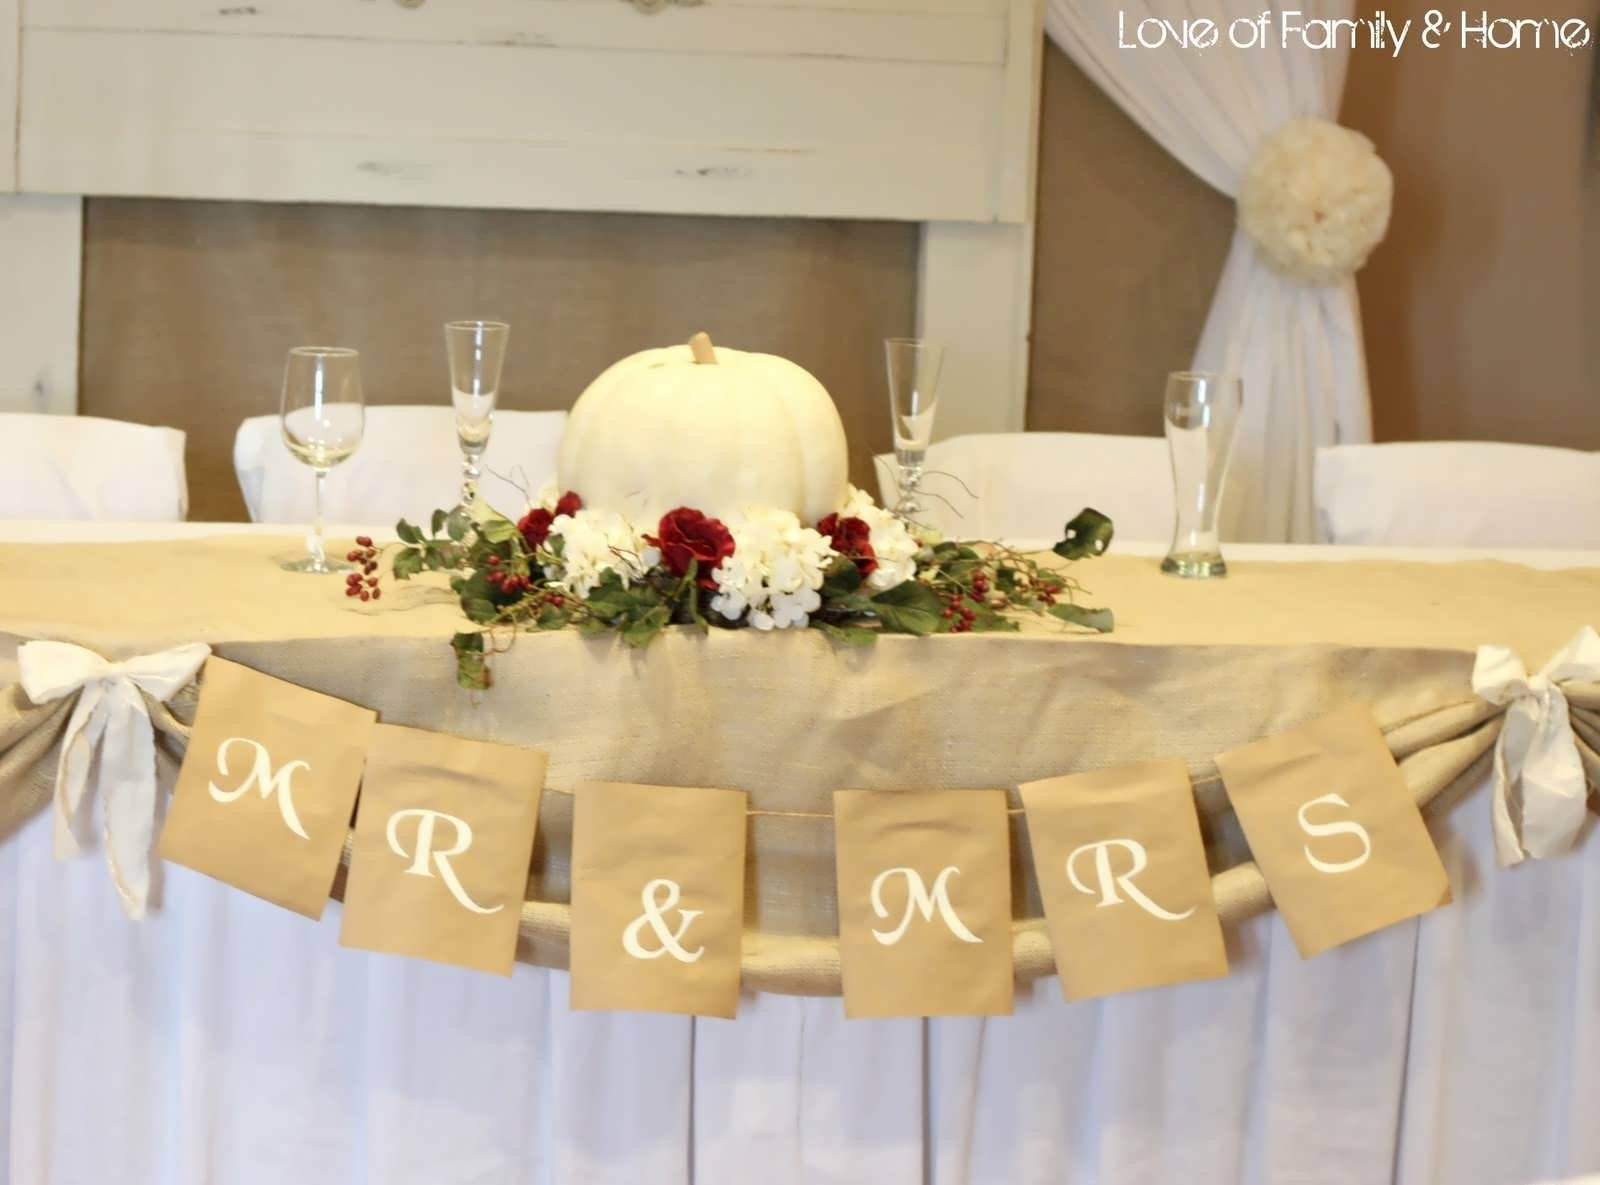 wedding decorations ideas on a budget | 99 wedding ideas